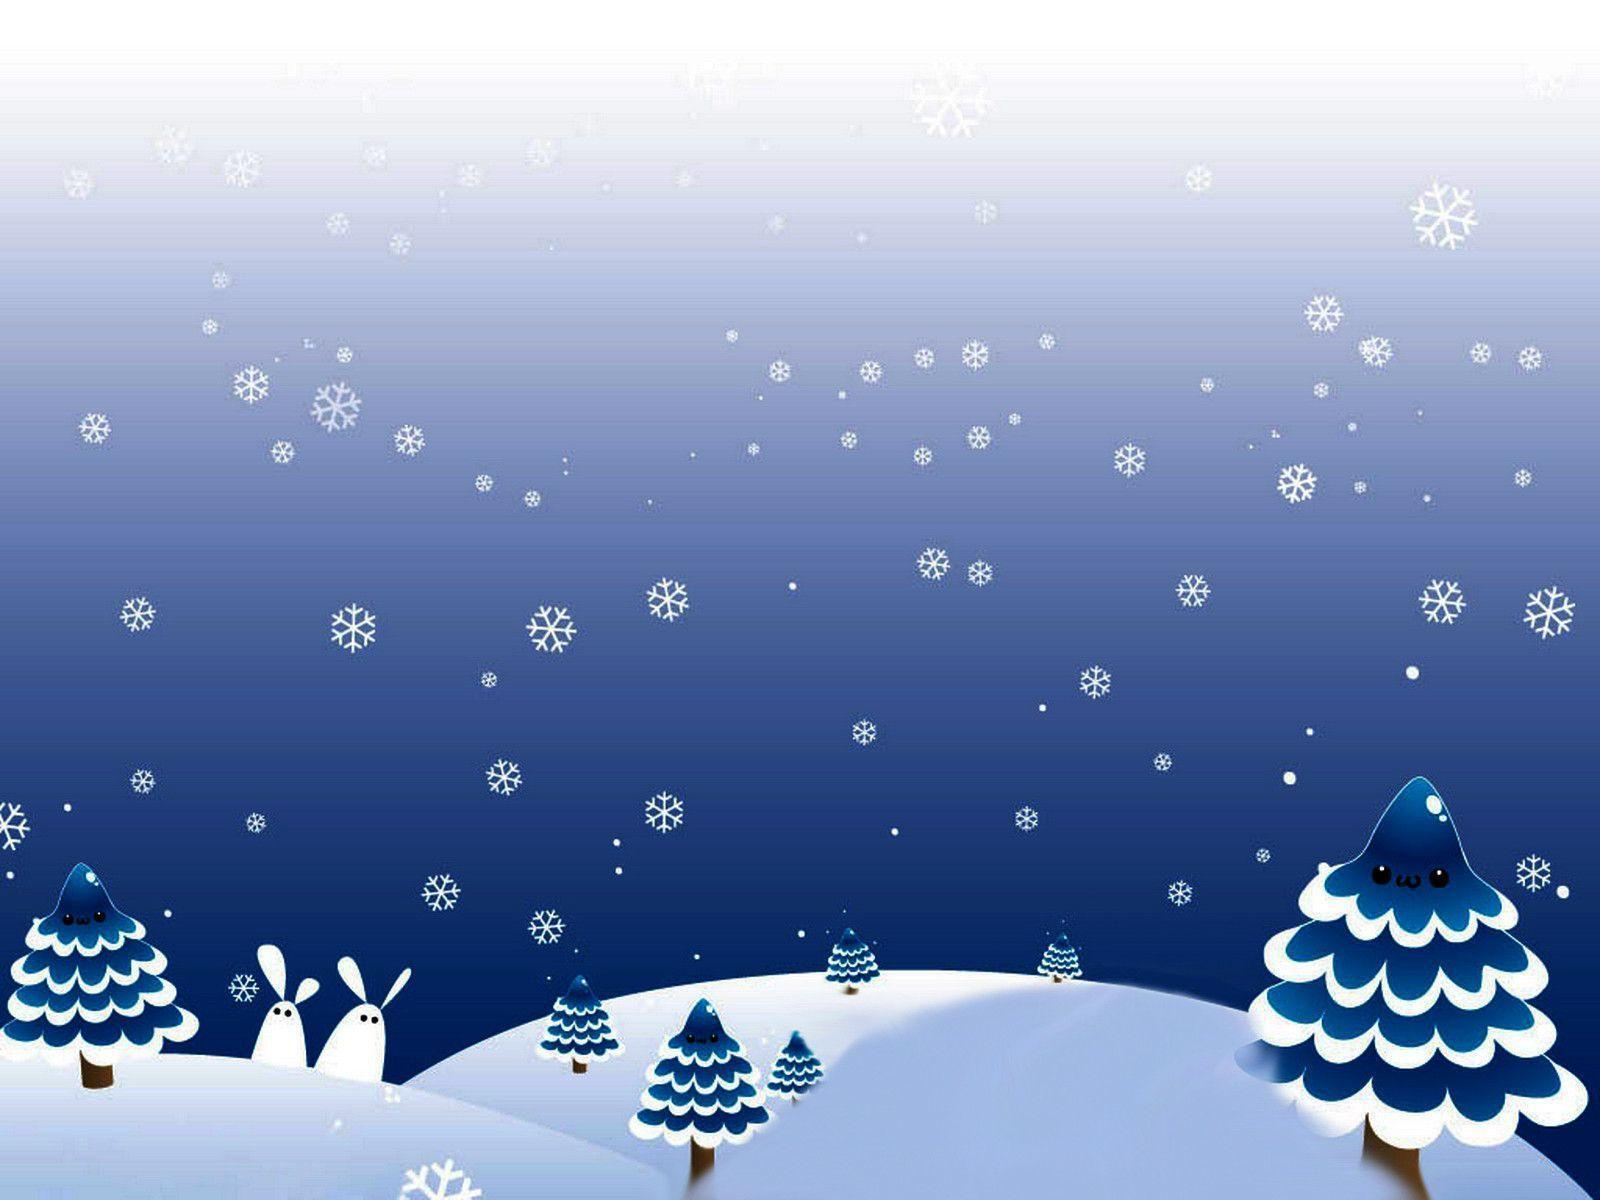 Winter Christmas Backgrounds - Wallpaper Cave